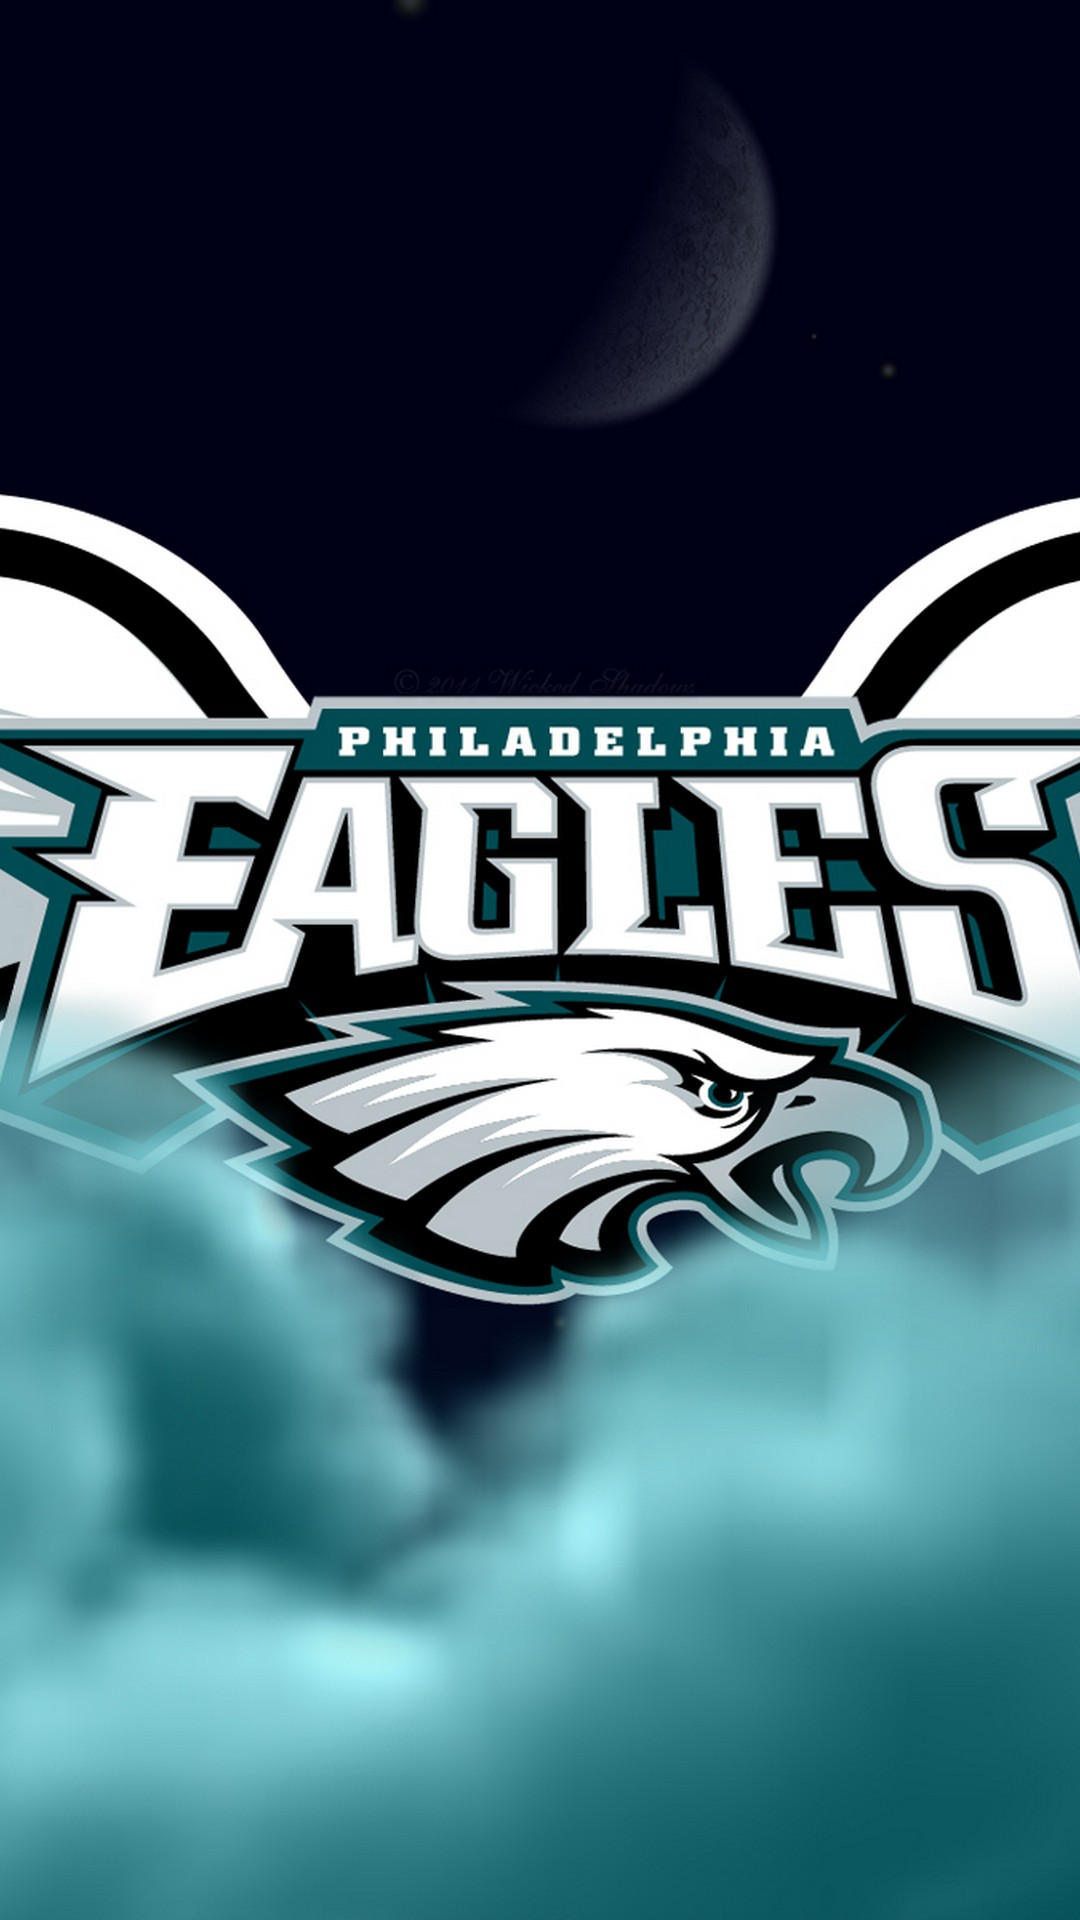 Philadelphia Eagles Iphone X Wallpaper With Resolution - Iphone X Football Backgrounds - HD Wallpaper